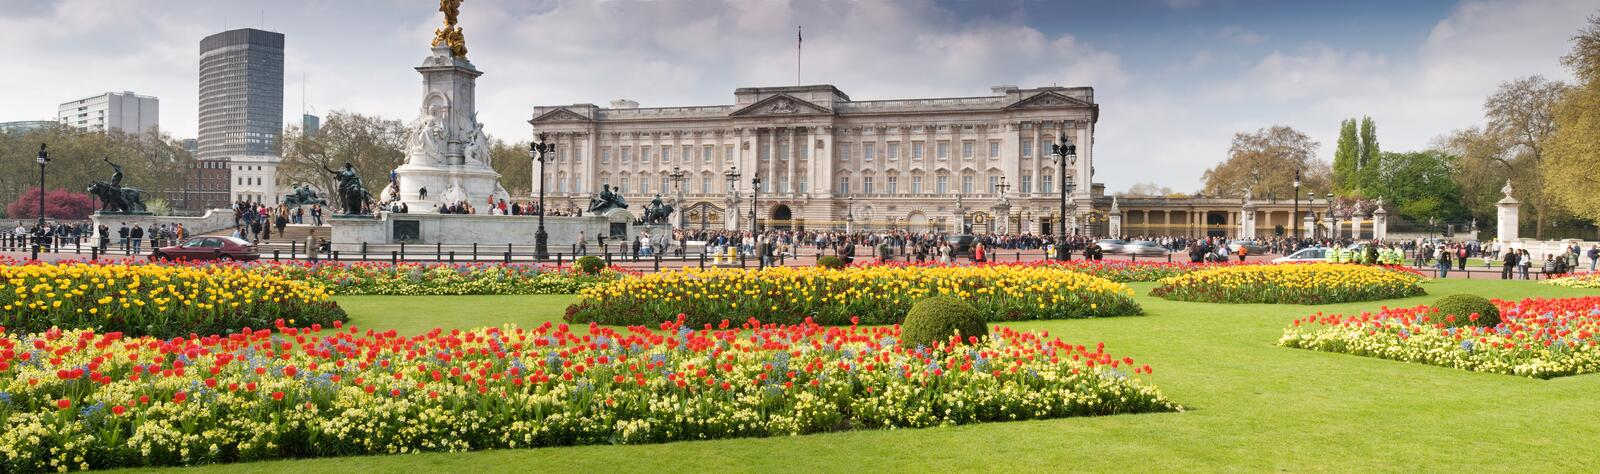 Buckingham Palace panoramisch in de lente stock afbeelding